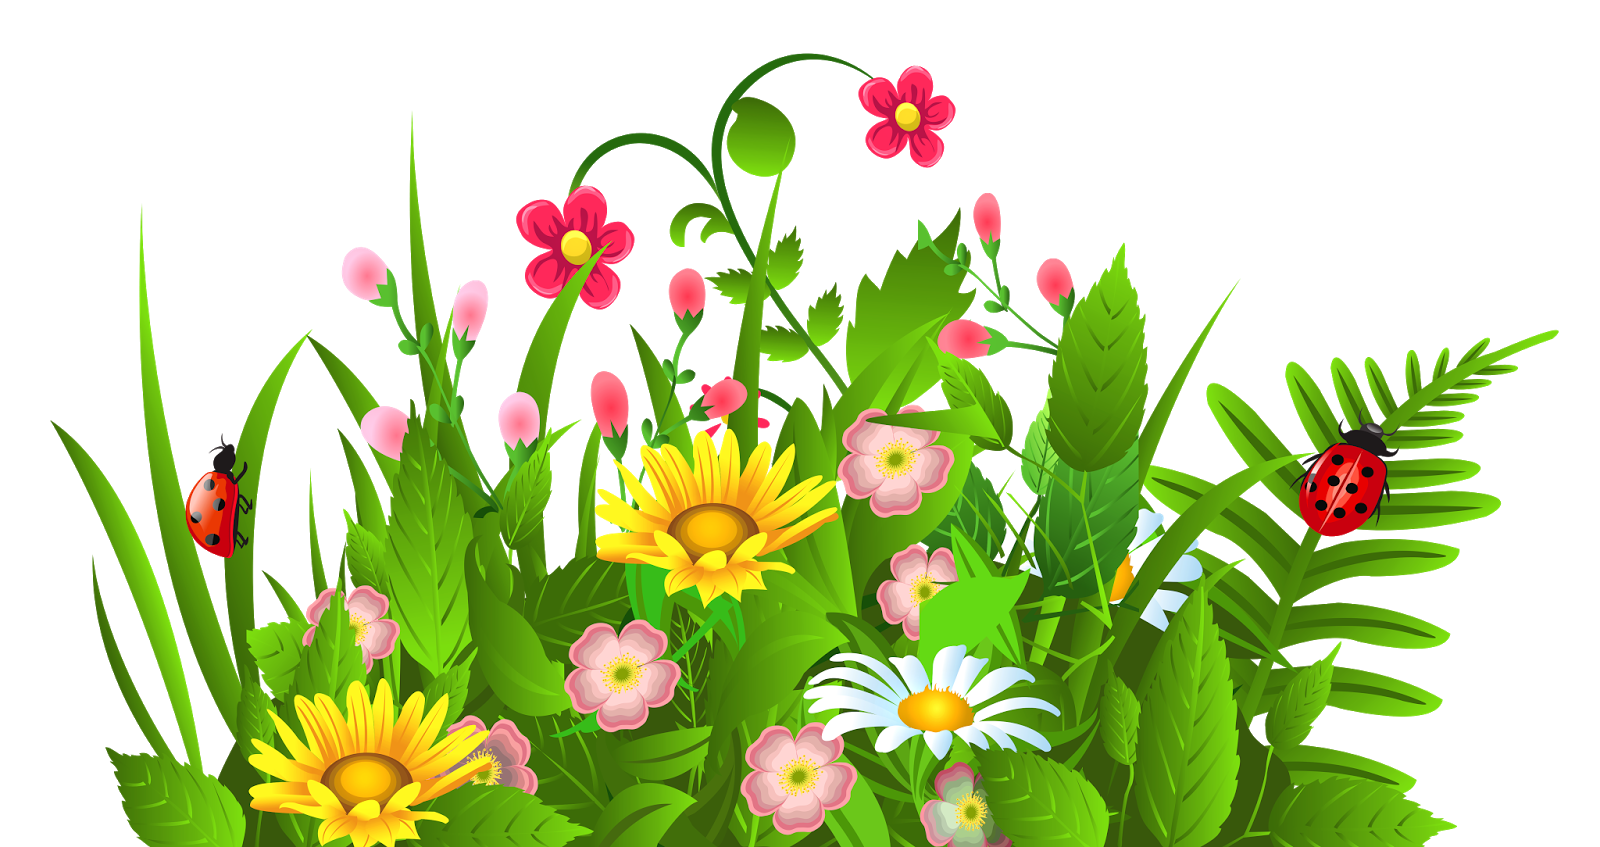 flower garden clipart 8 spring flowers images flower garden drawing flower clipart flower garden drawing flower clipart